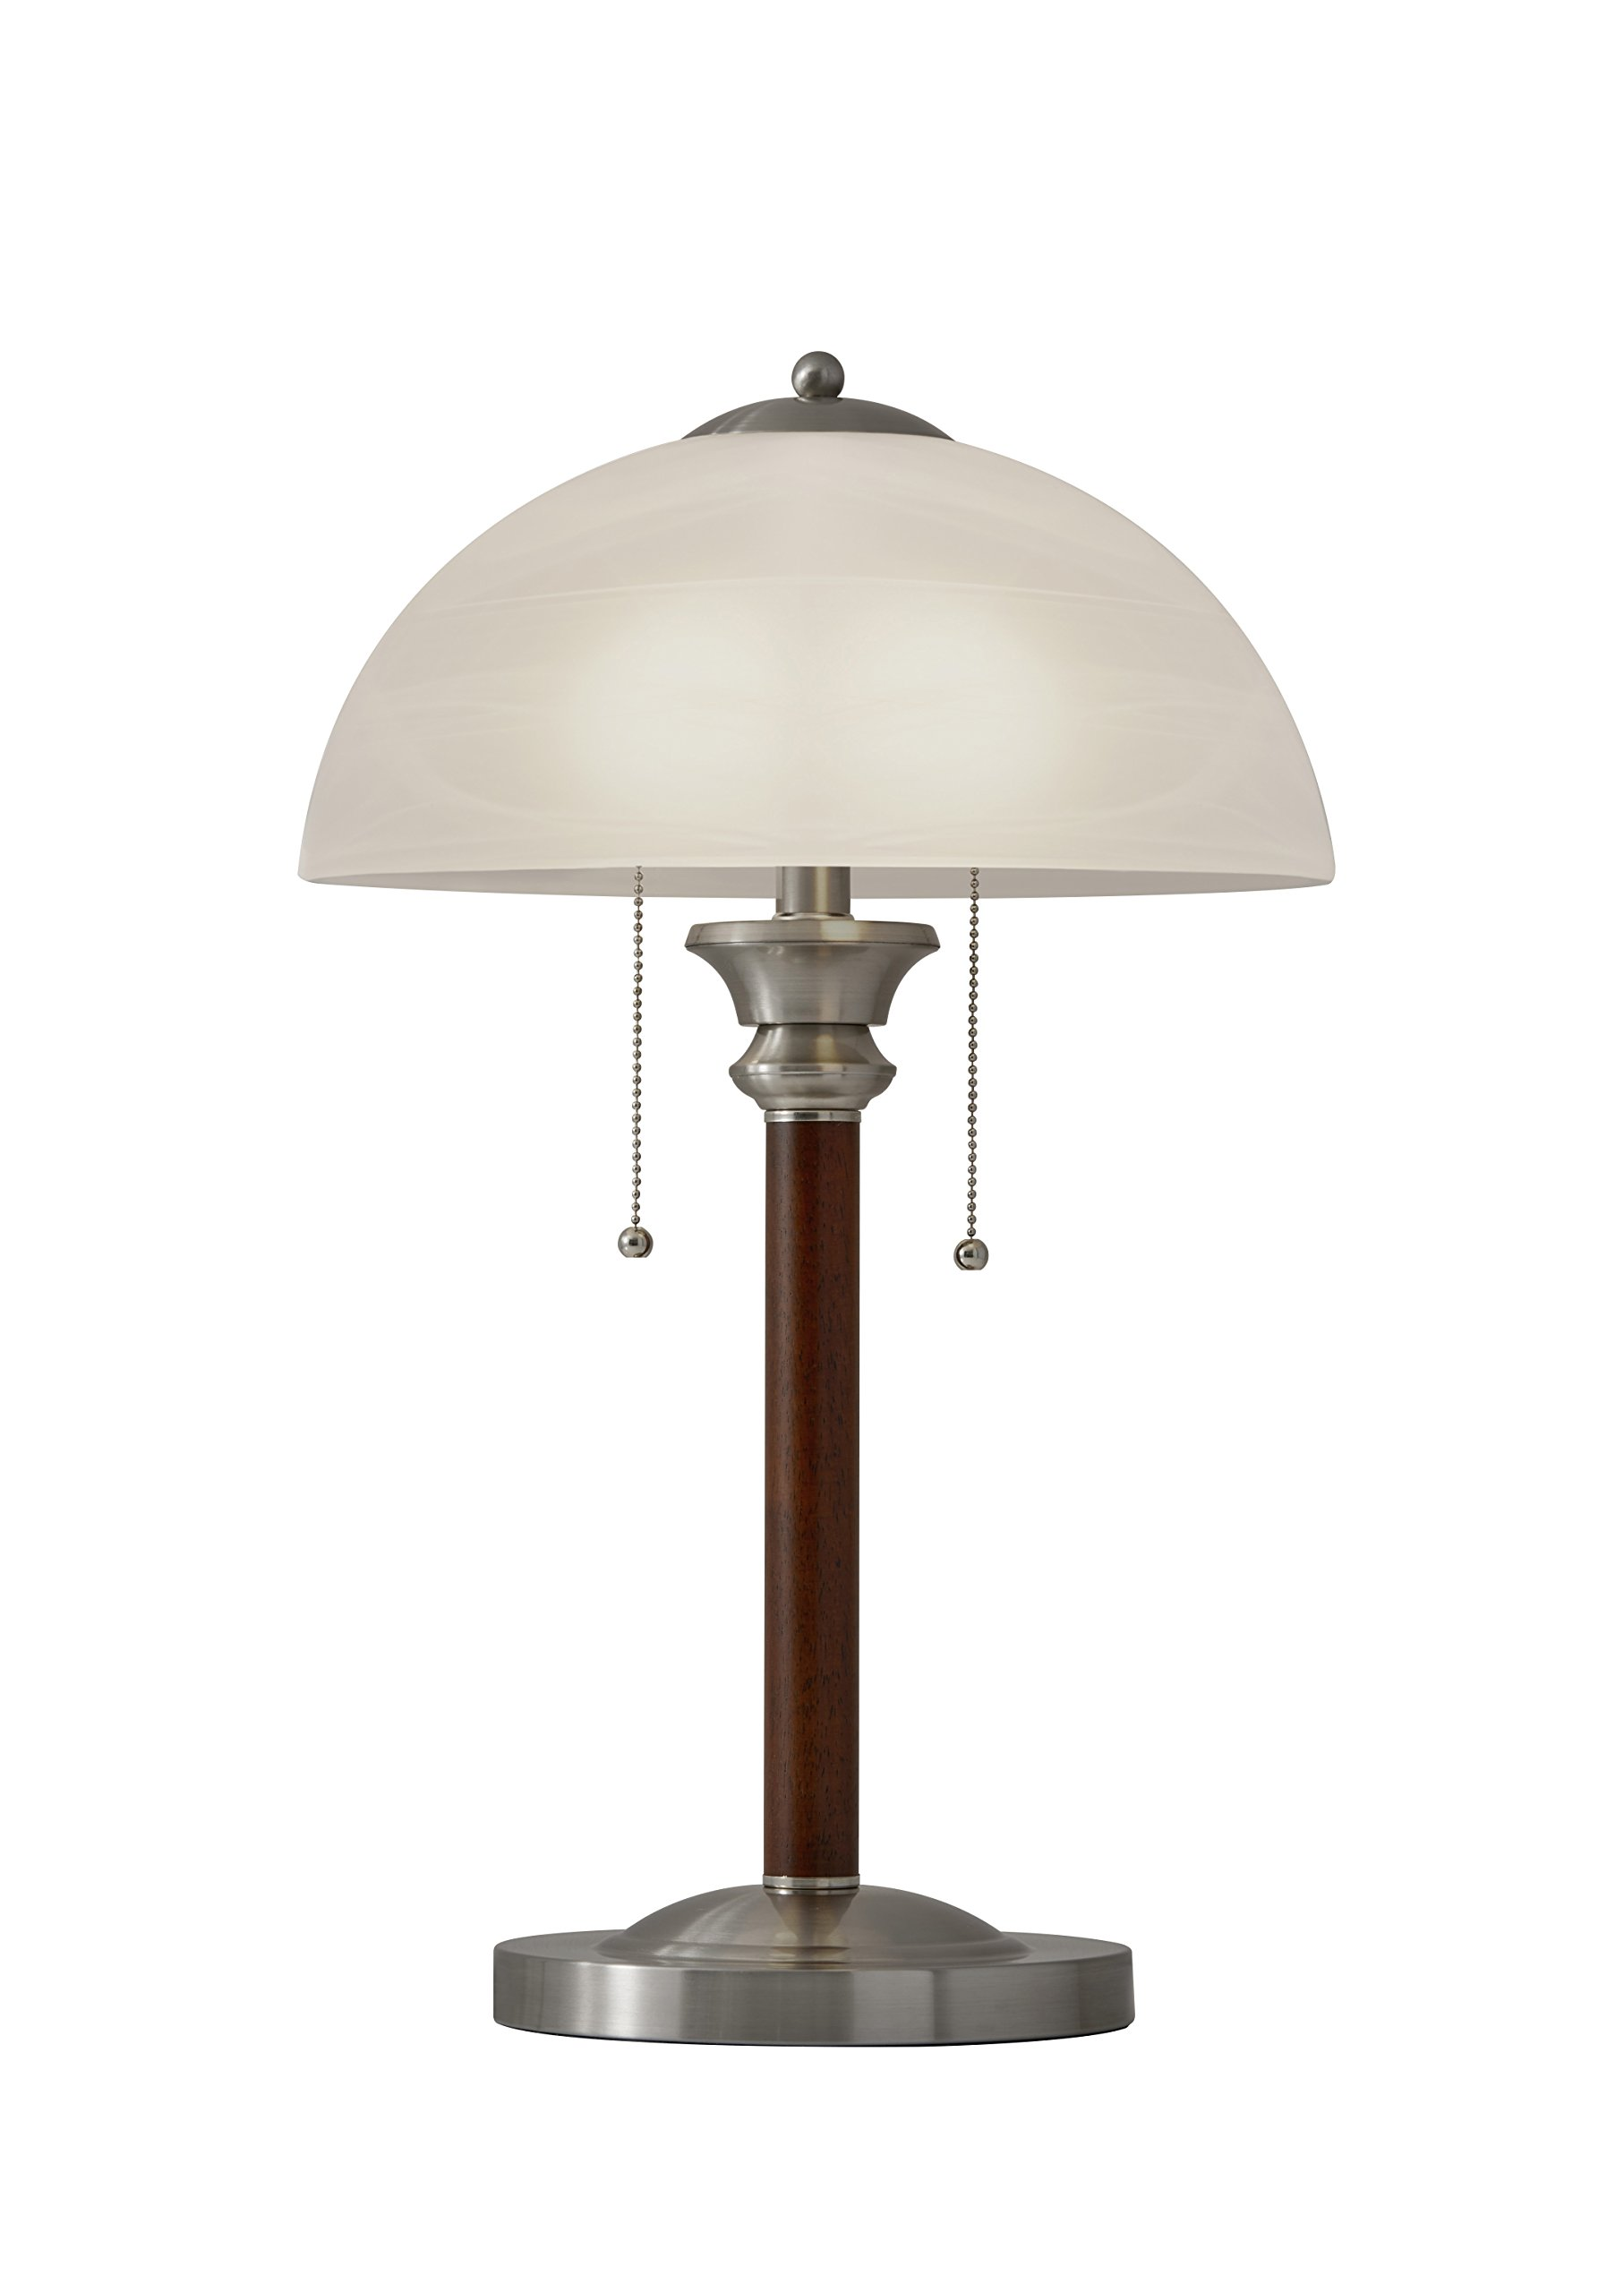 Adesso 4050-15 Lexington 22.5'' Table Lamp – Lighting Fixture with Walnut Wood Body, Smart Switch Compatible Lamp. Home Improvement Equipment